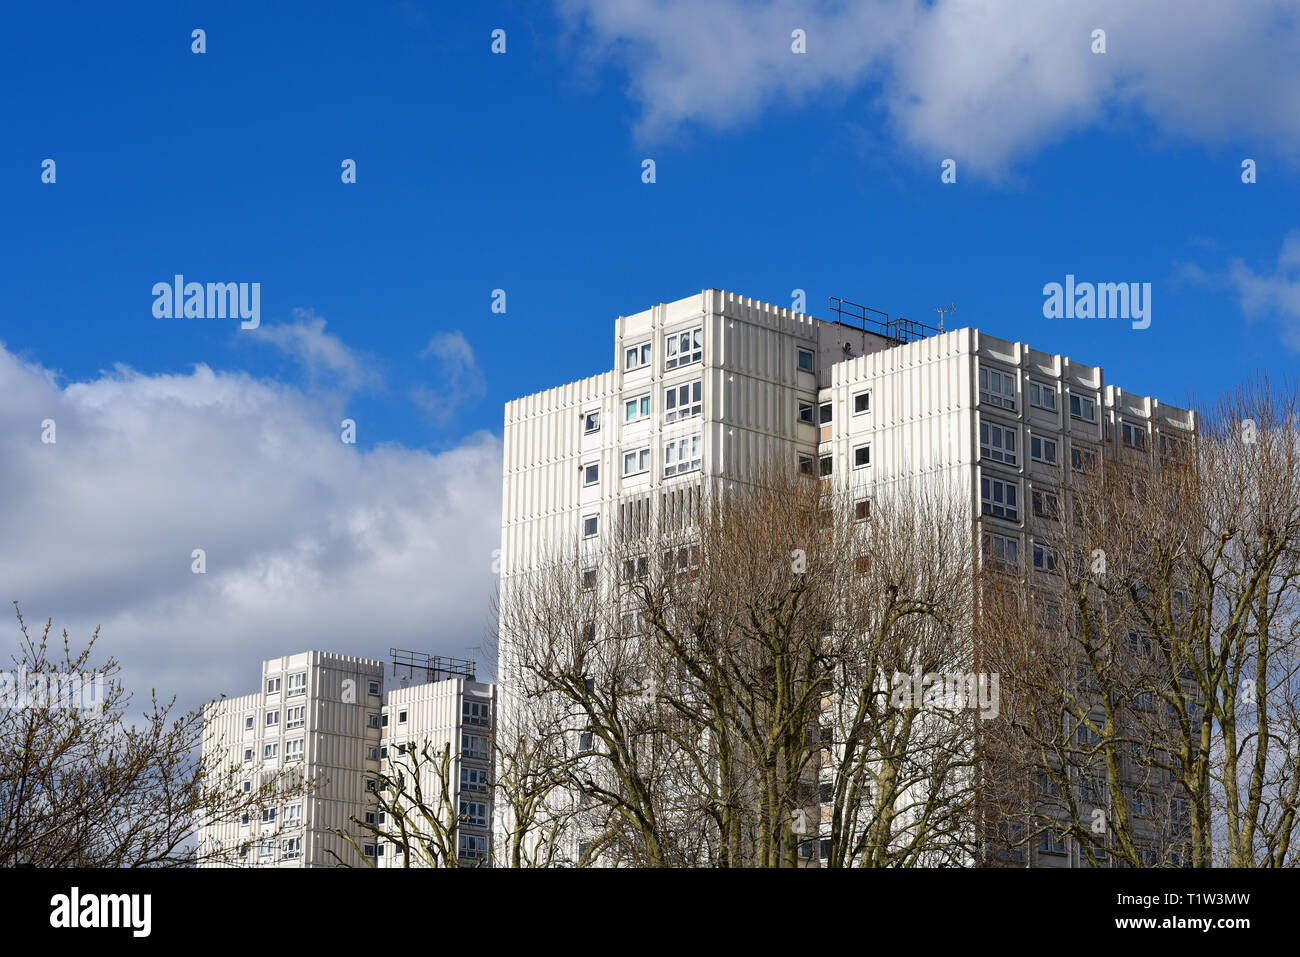 Blackdown flats in North Road, Westcliff on Sea, Essex. Managed by South Essex Homes for Southend Borough Council. High rise living. Space for copy - Stock Image